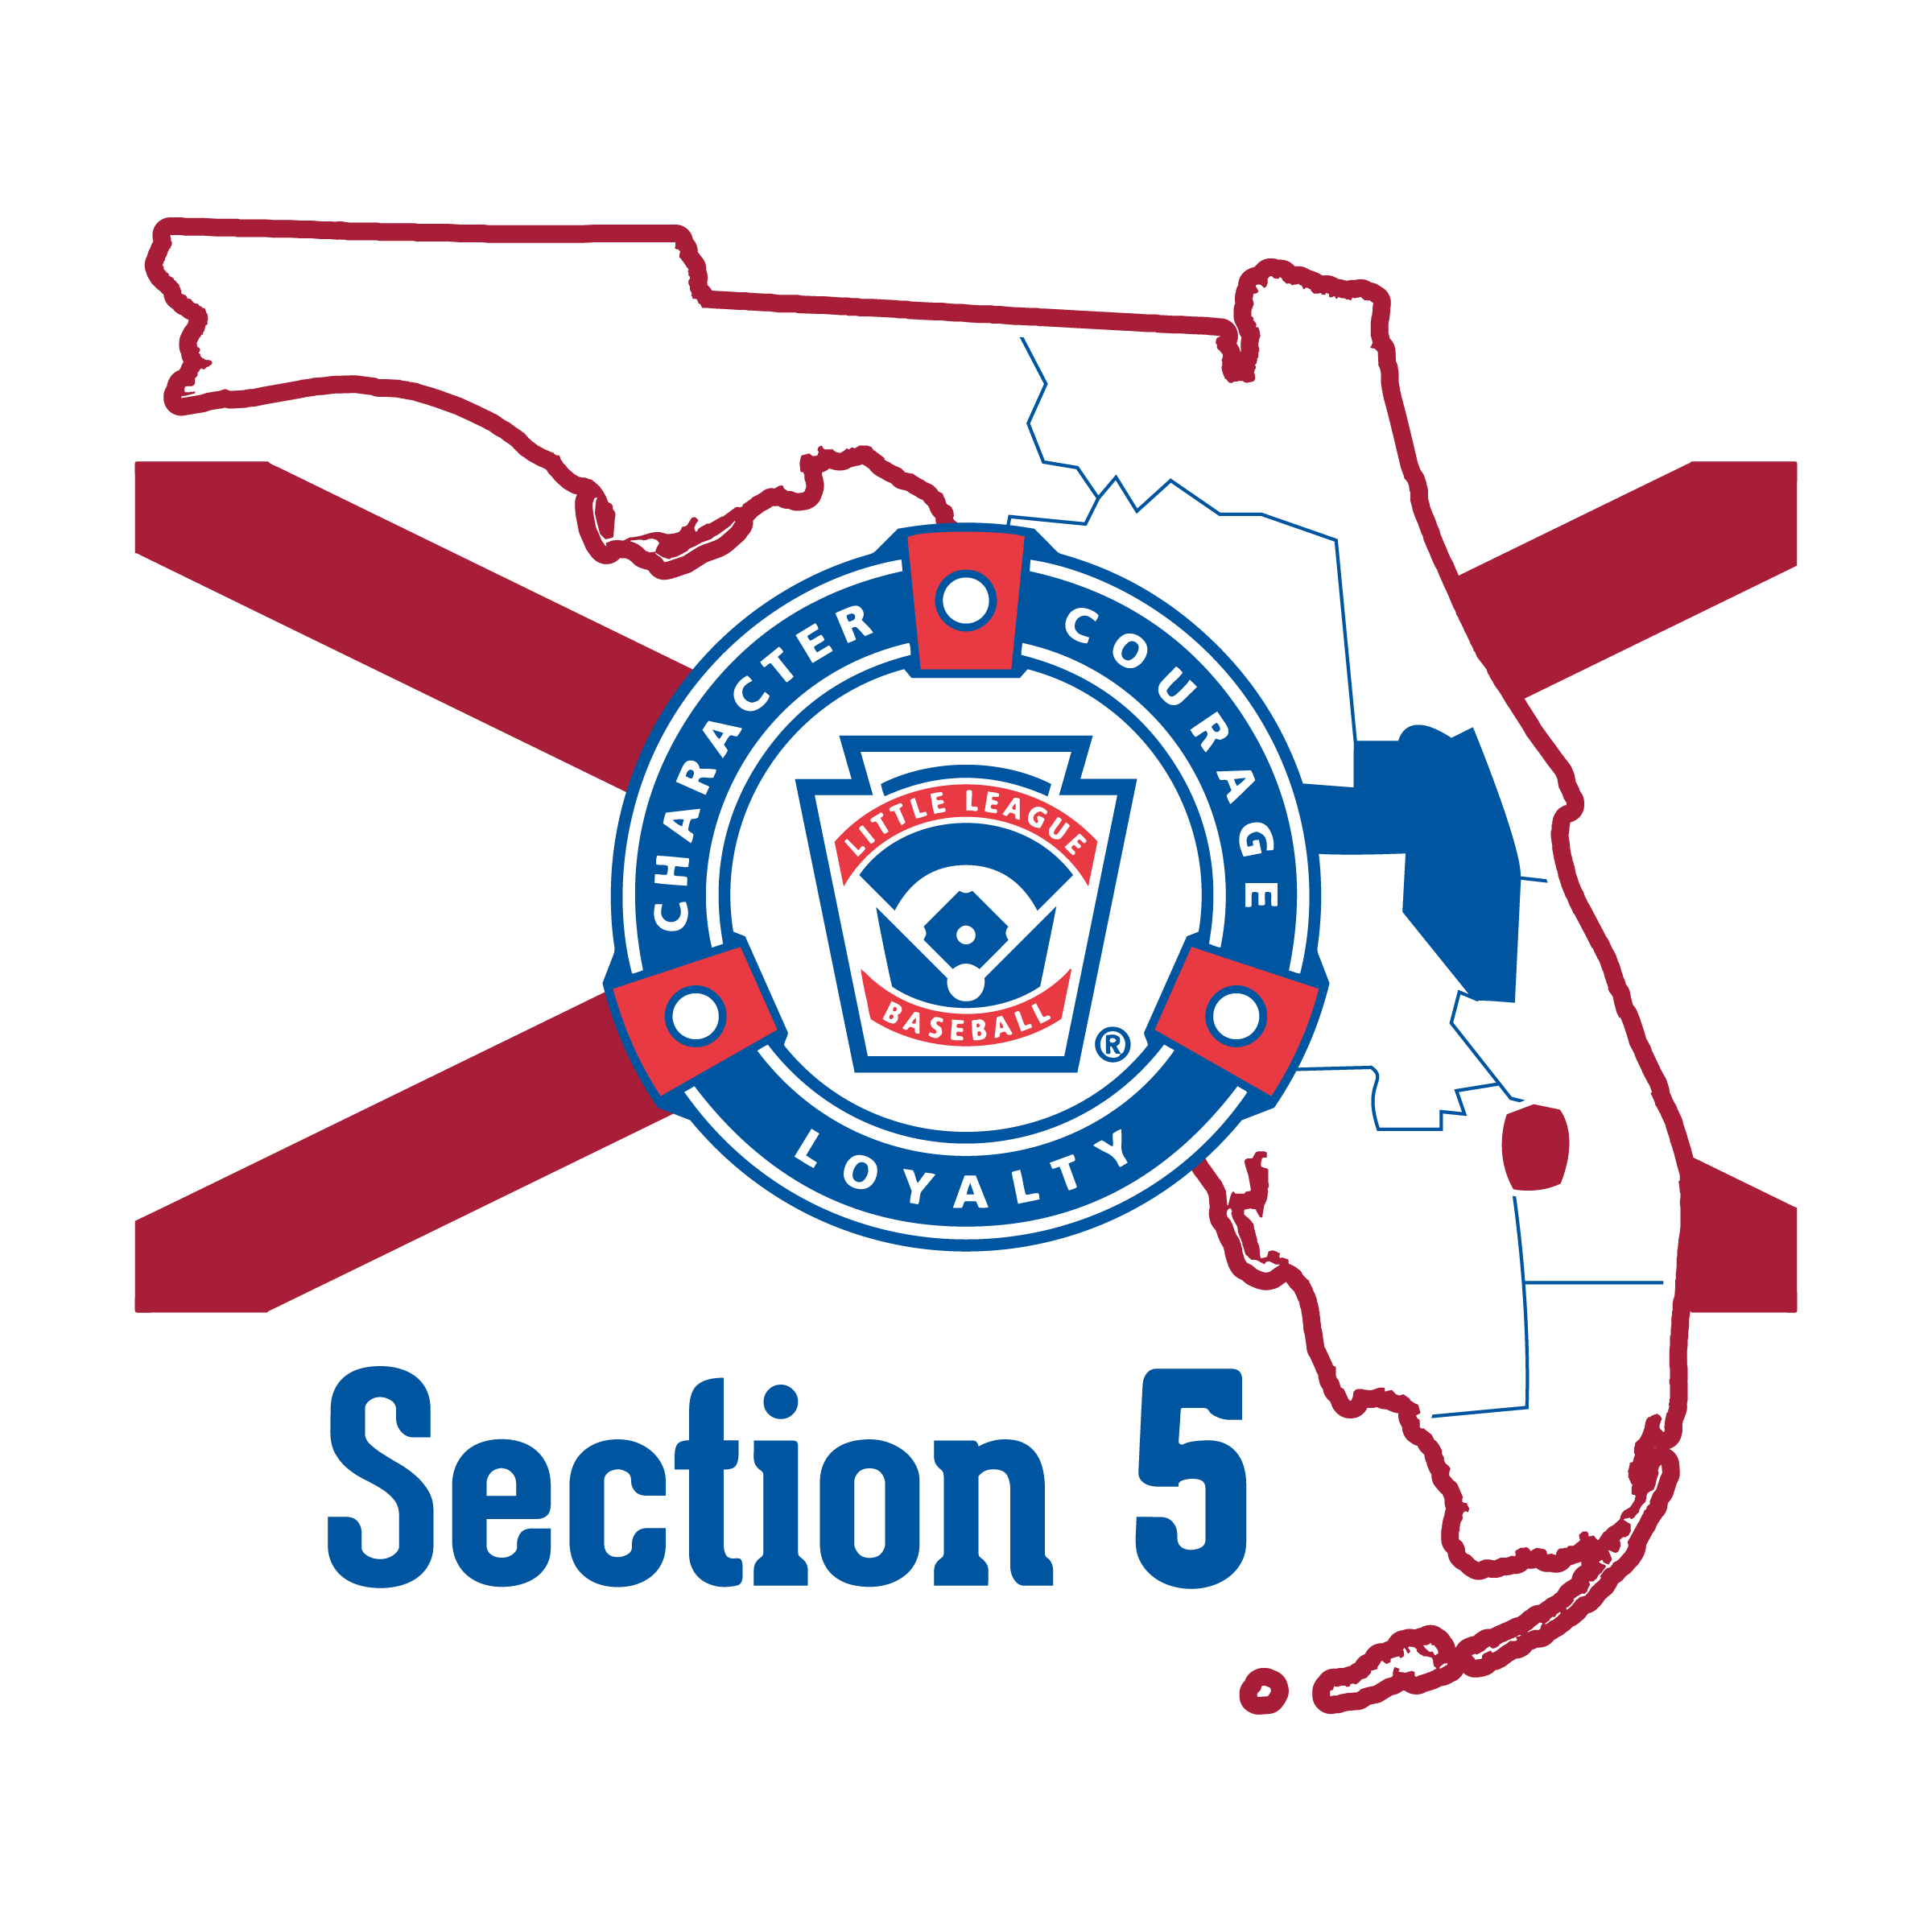 Florida Section 5